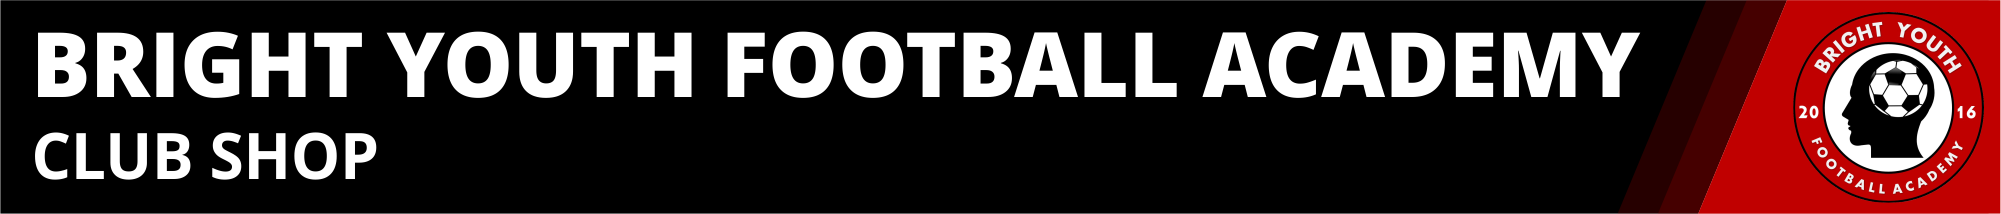 bright-youth-football-academy-club-shop-banner.png